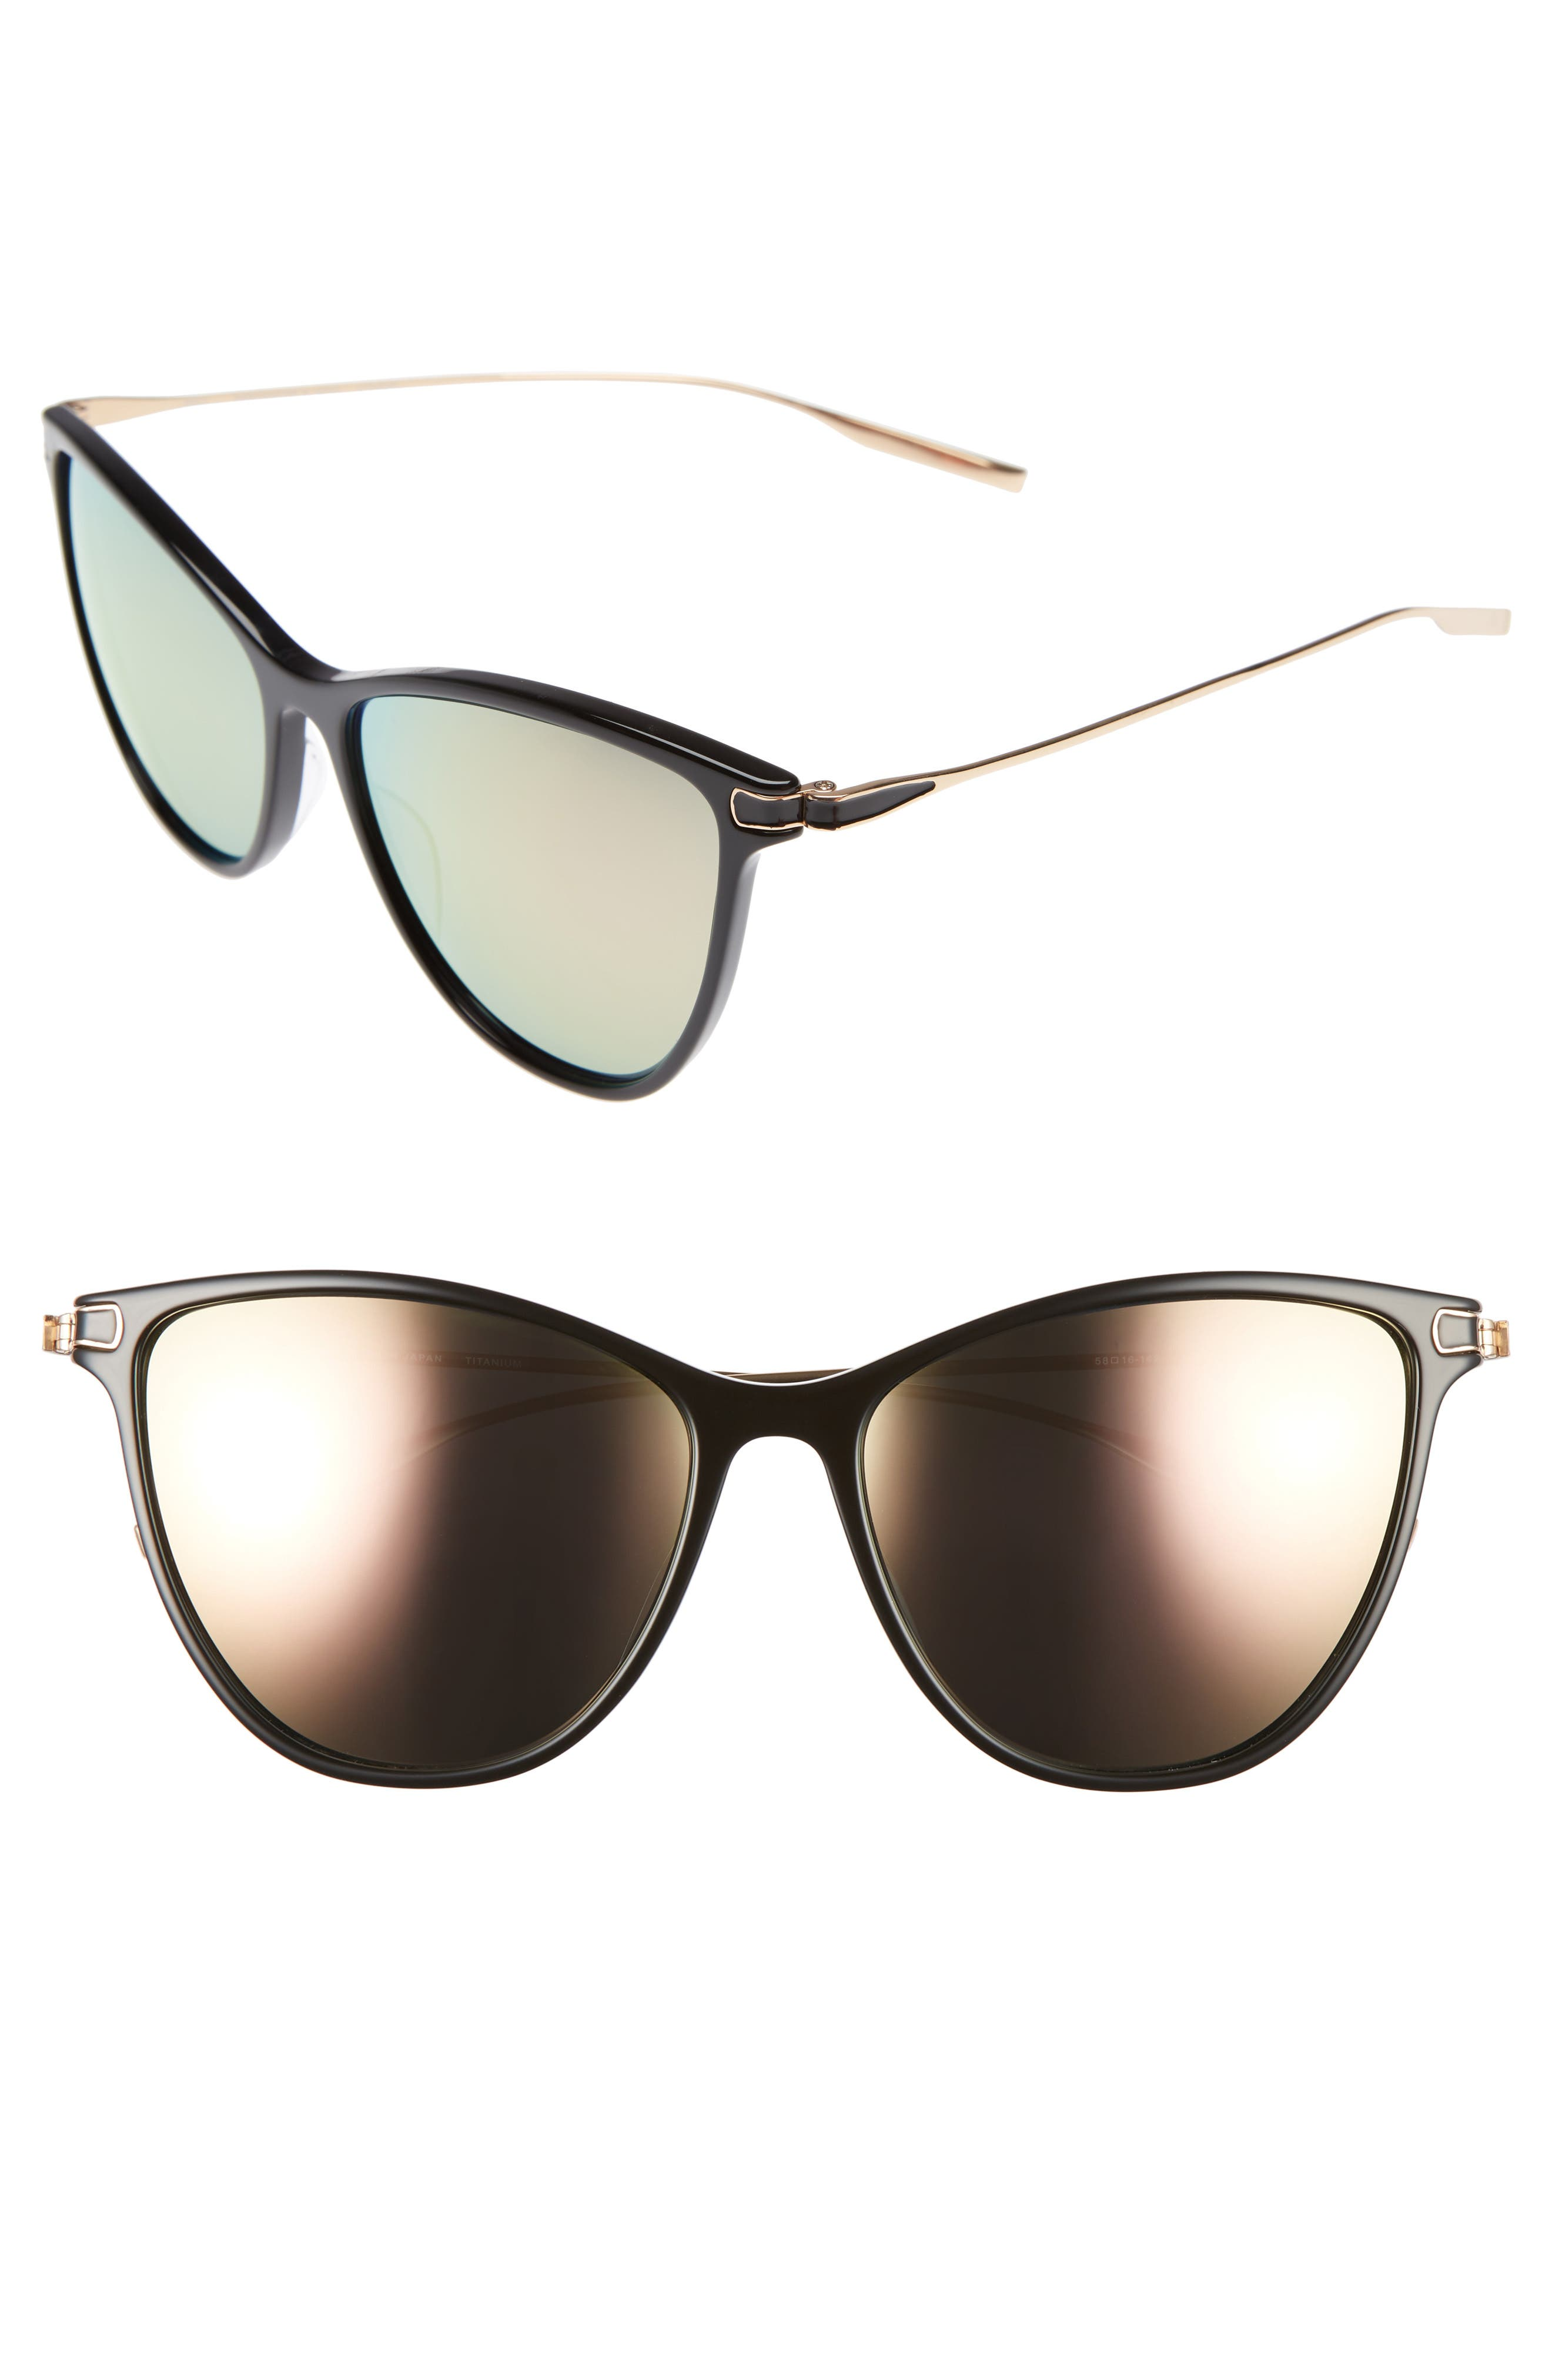 Nia 58mm Polarized Cat Eye Sunglasses,                         Main,                         color, 001